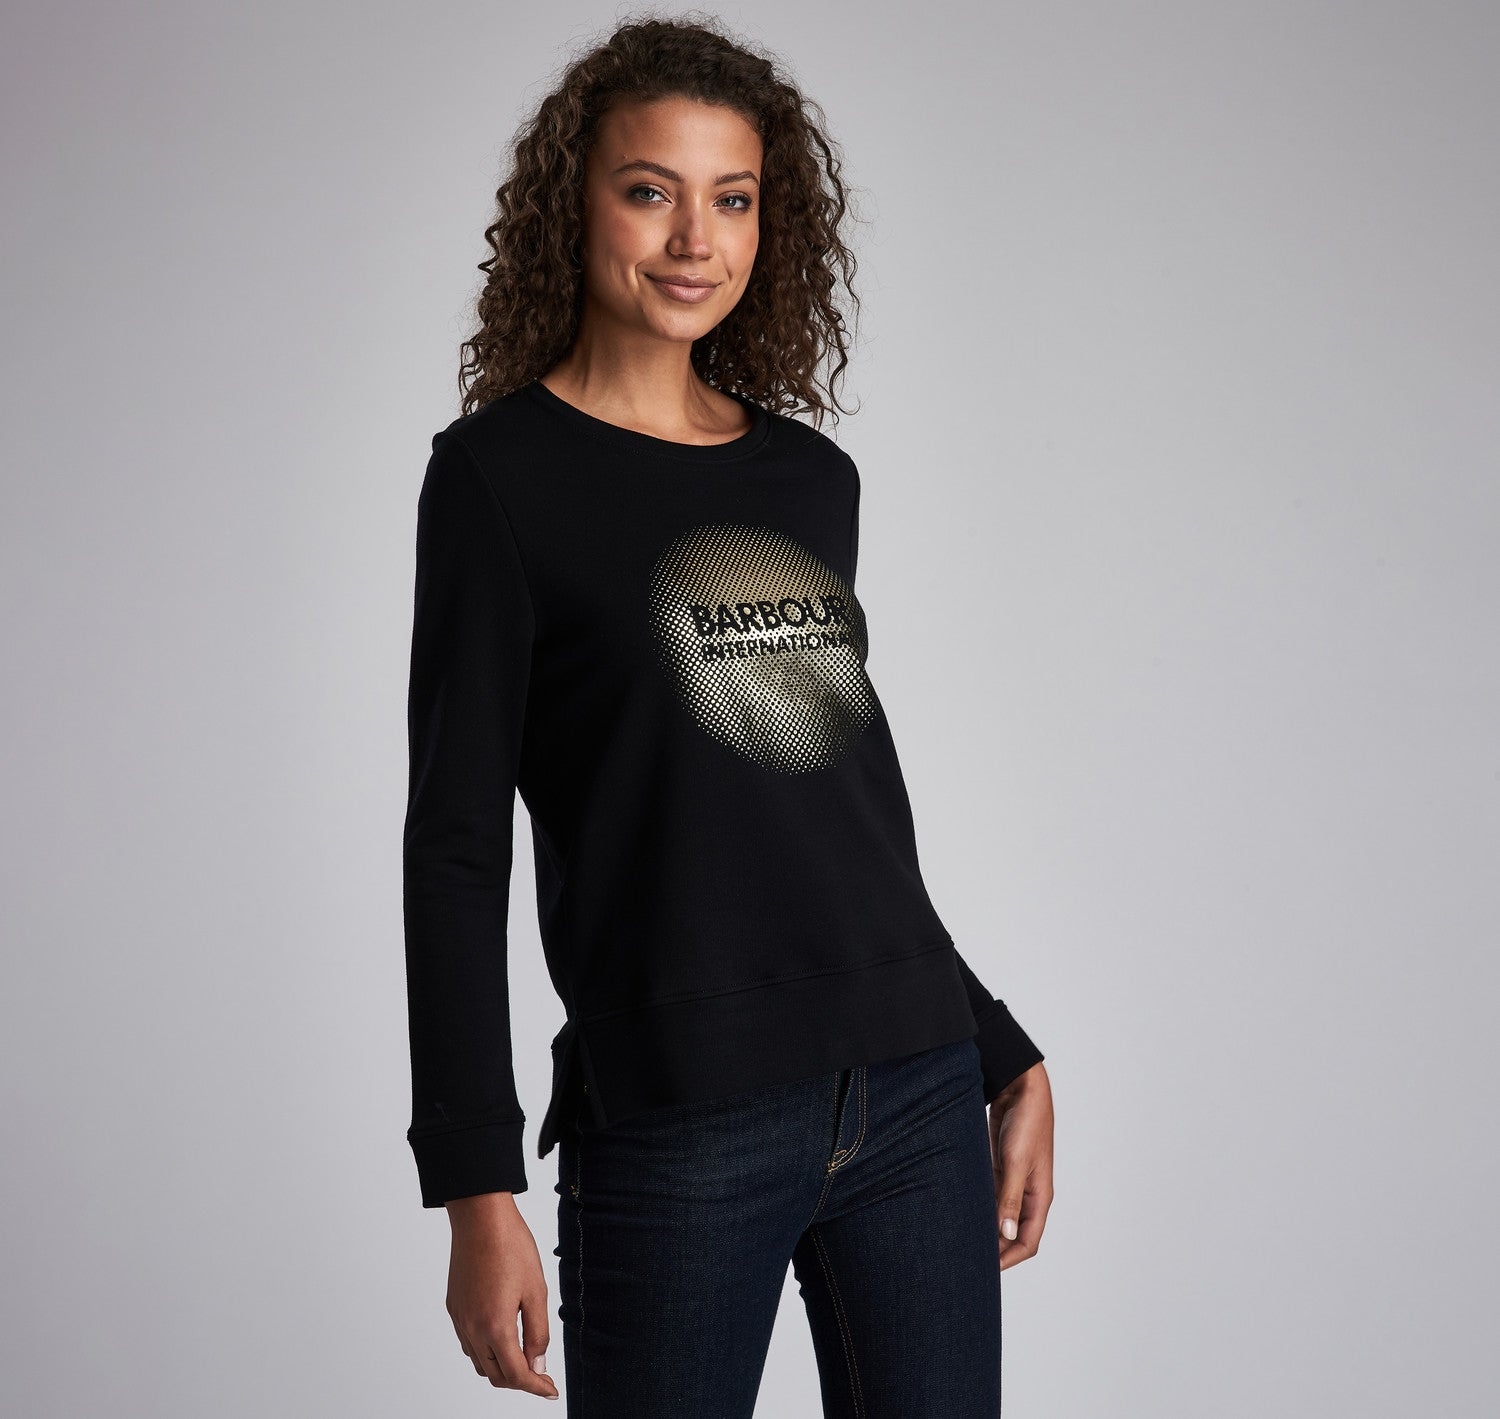 Barbour International Ronda Overlay Sweater for Ladies in Black